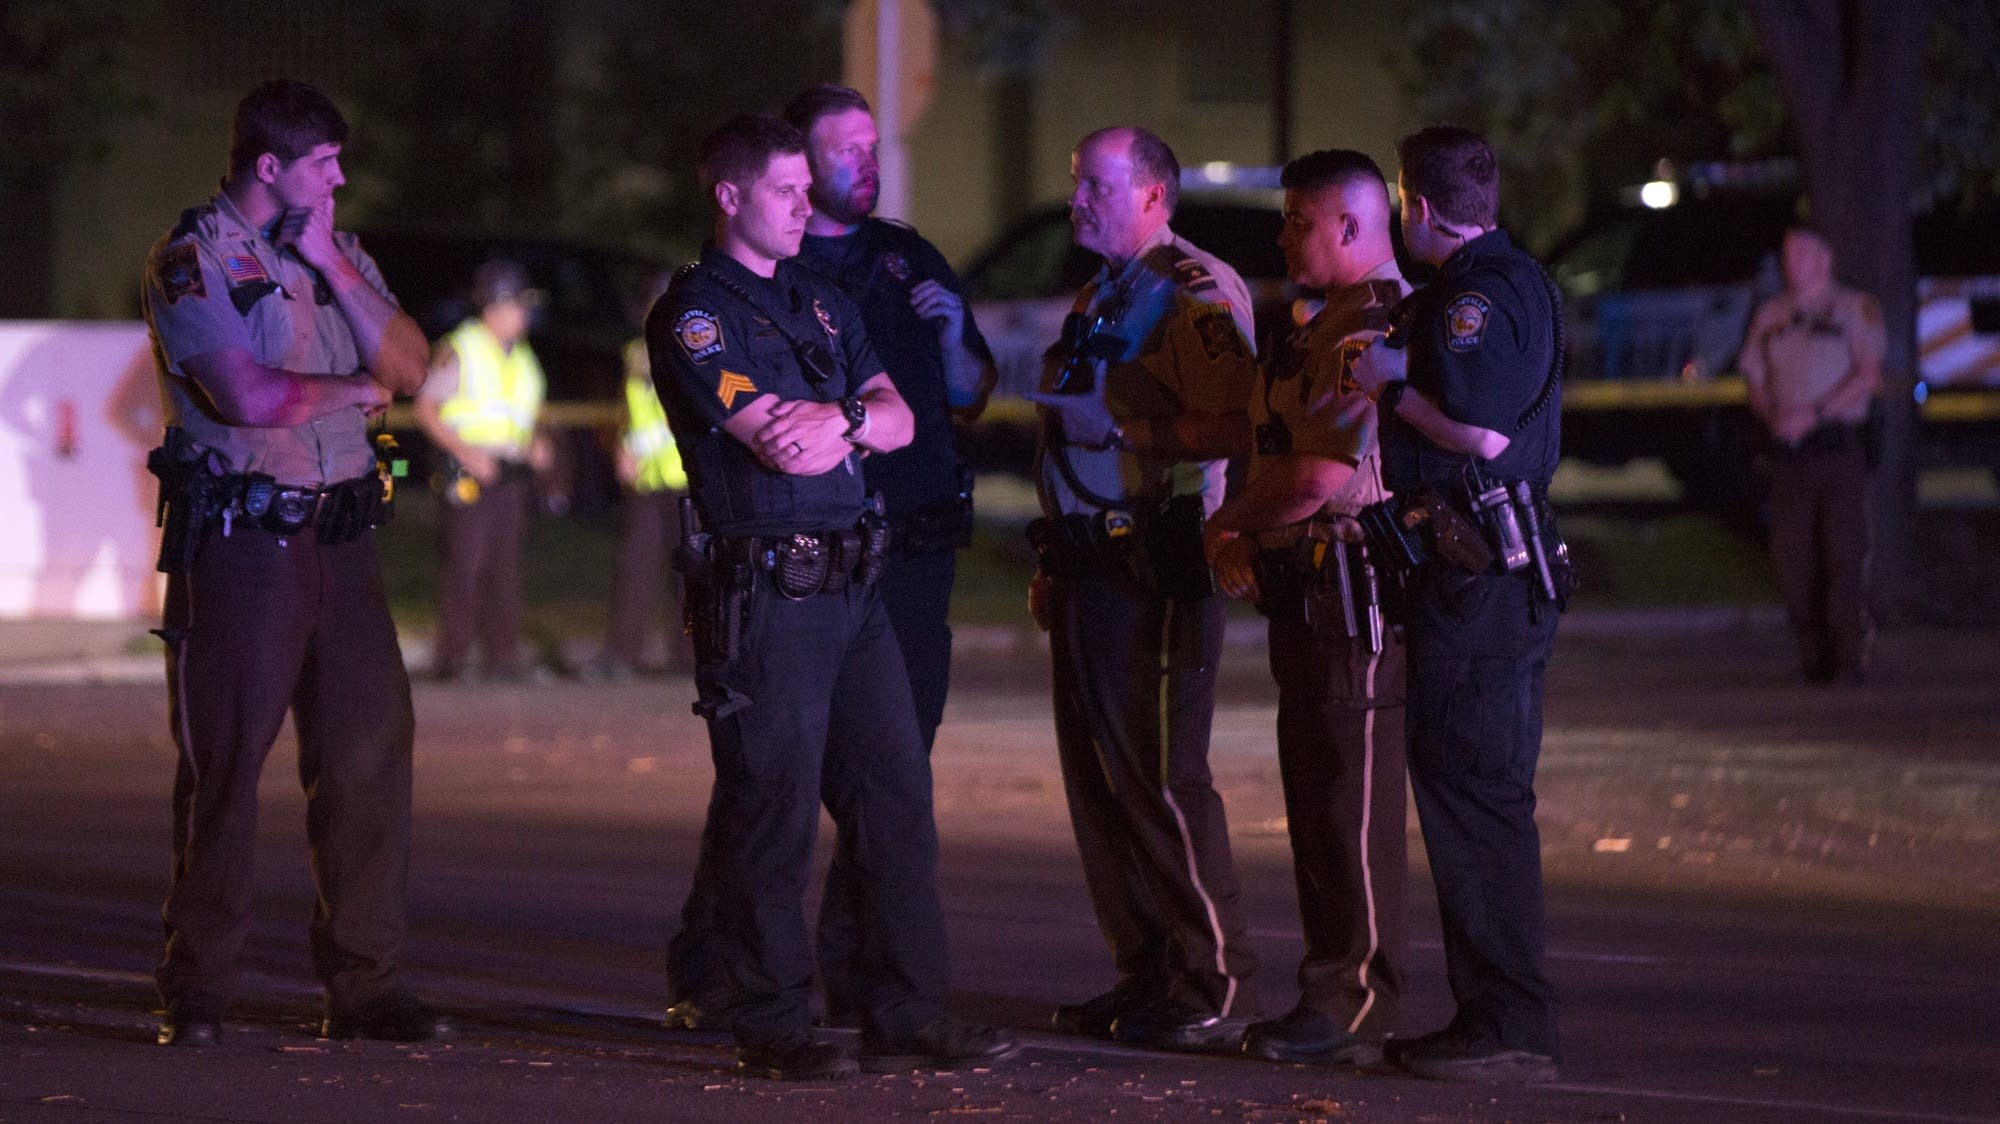 Officers gather at the scene of the shooting.